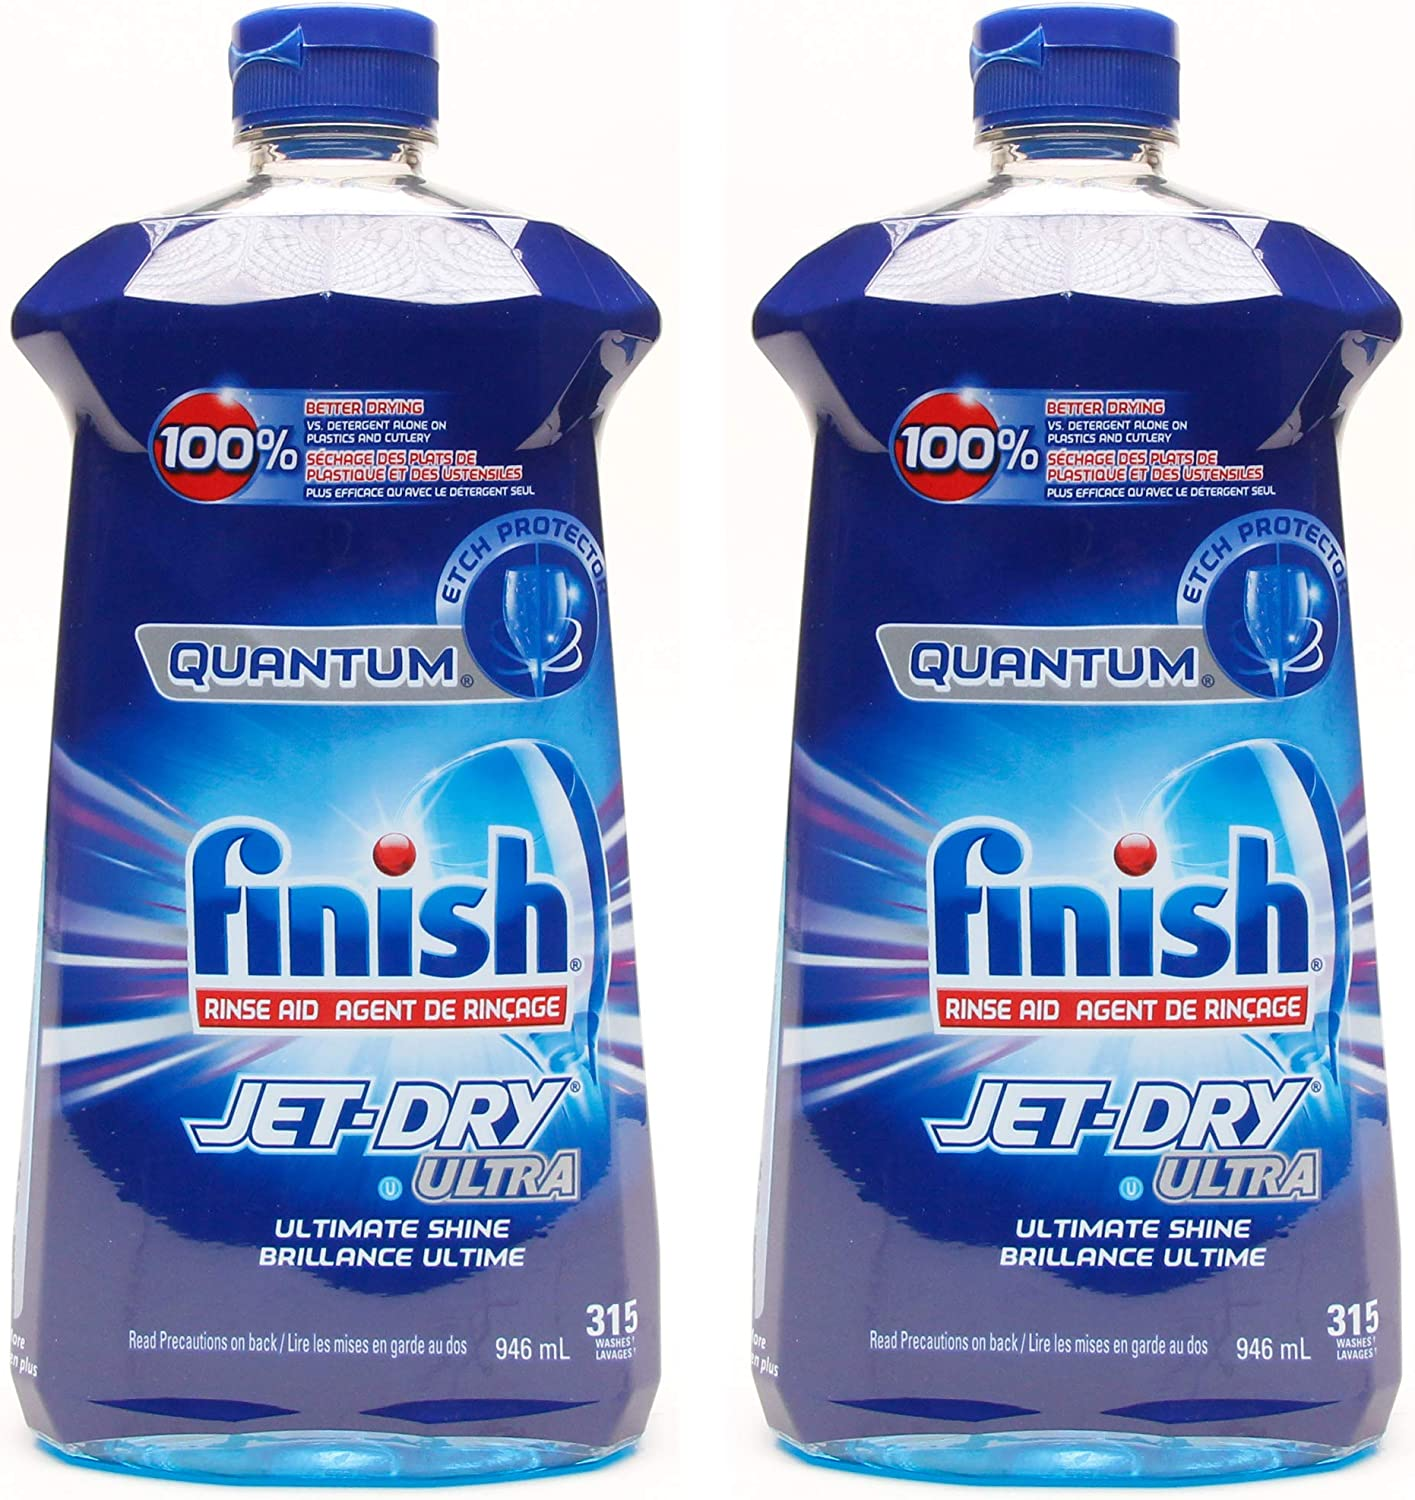 Finish Quantum Jet-Dry Ultra Dishwasher Rinse Agent, 315 Washes - 32 Fl Oz / 946 mL x 2 Pack (630 Washes)